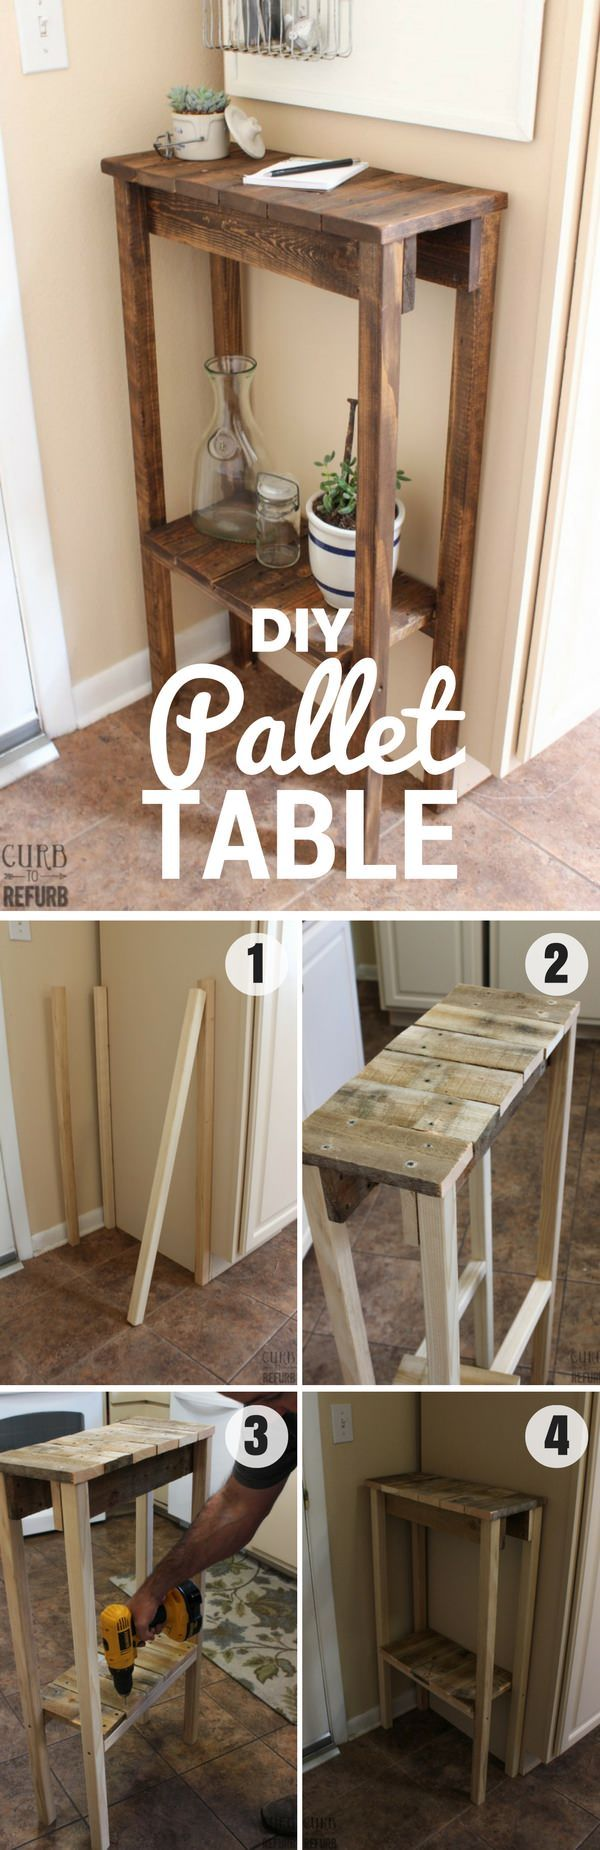 We Ve Picked 15 Amazing But Still Easy Diy Wood Craft Projects For